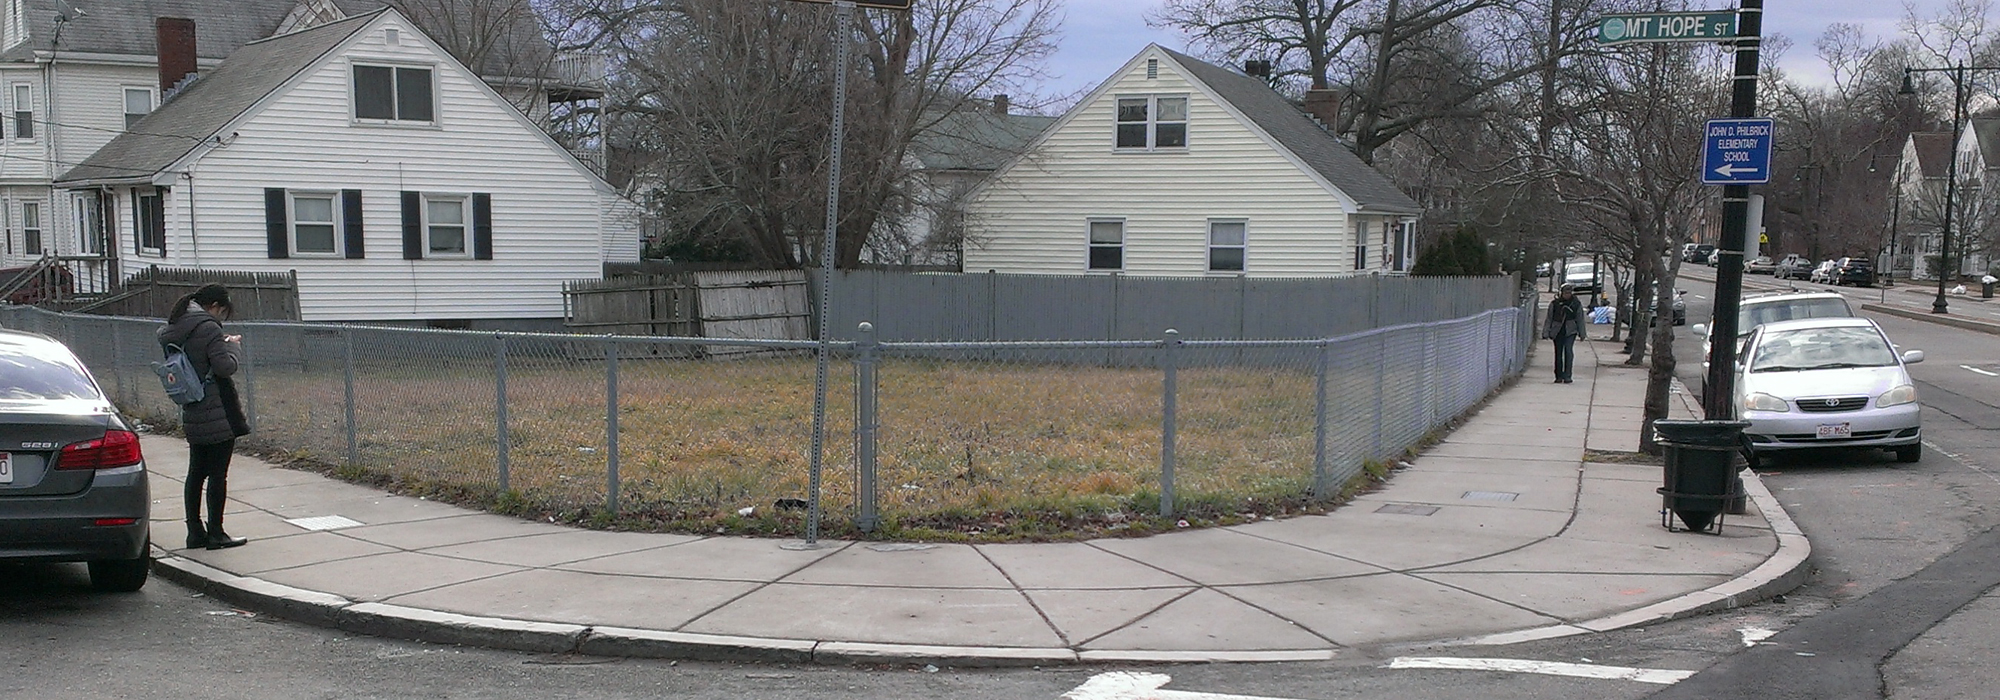 Image for a photo of the mount hope street parcel in roslindale